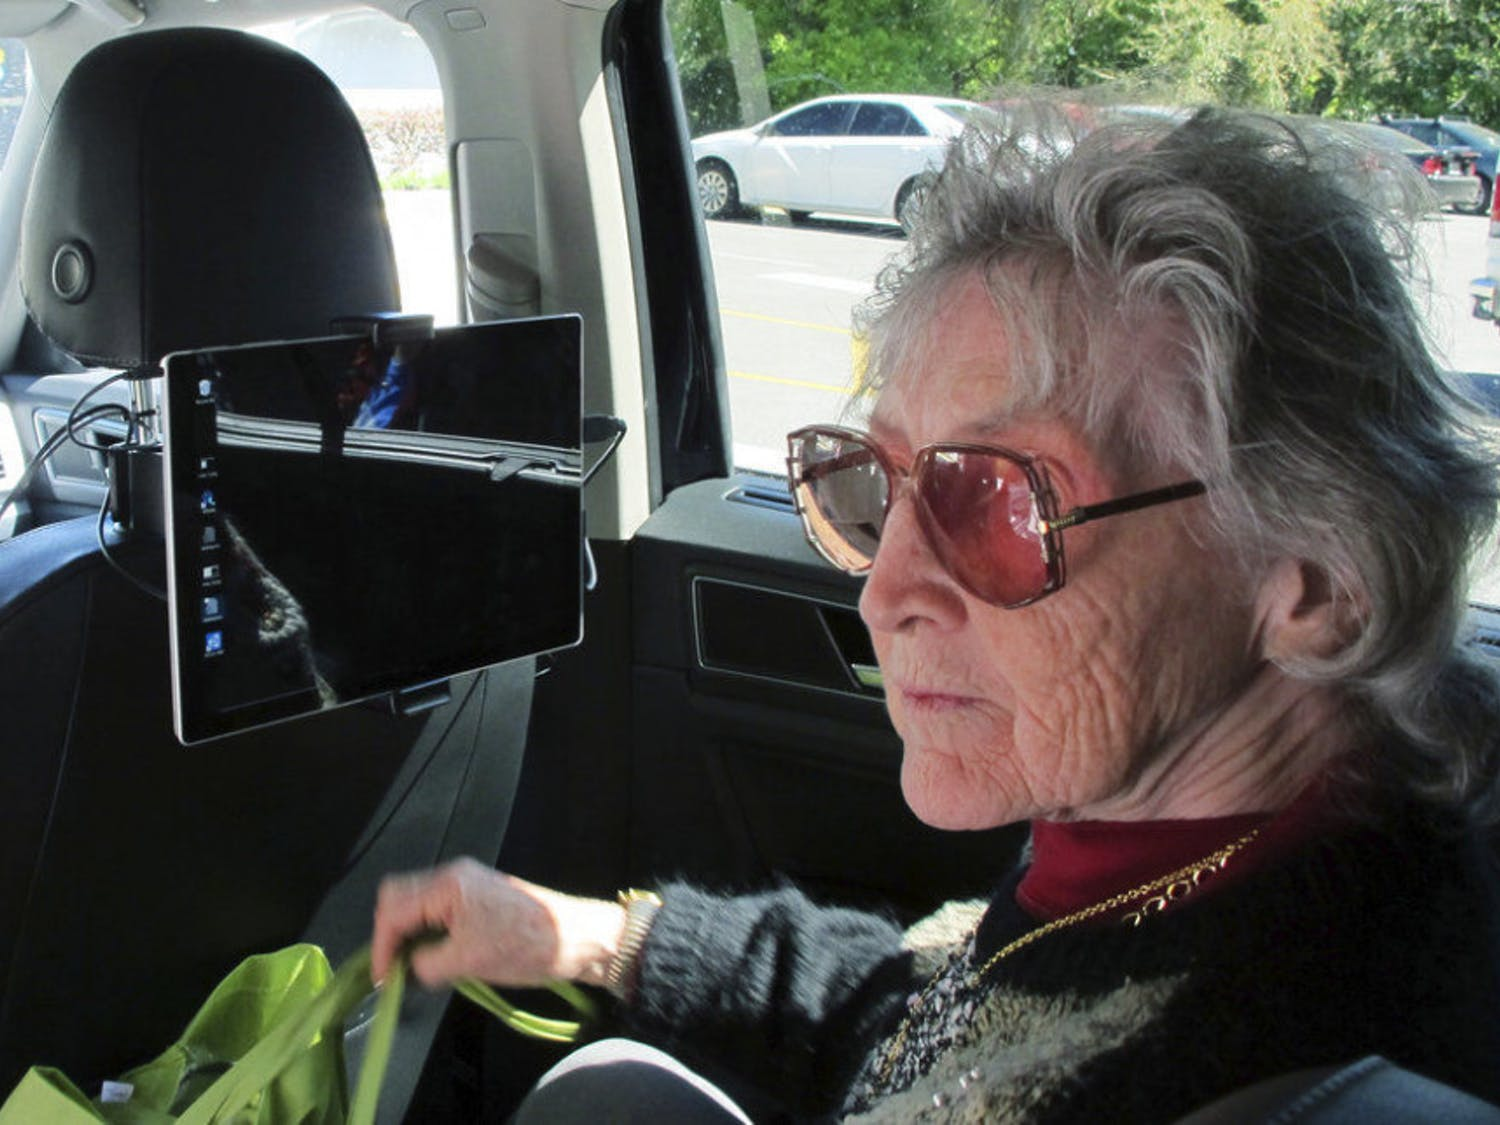 In this photo taken Wednesday, March 7, 2018, shows Sharon Van Etten, listening to a computerized voice in a vehicle equipped with software meant to help the visually impaired interact with self-driving cars in Ocala, Fla. Six years after a video went viral of a blind man going through a drive thru in a self-driving car, advocates for visually impaired people worry the industry is leaving them behind as they develop the cars of the future. So prominent groups are turning to university researchers like Brinkley to help build systems that will unlock the potential of autonomous cars' for the blind.